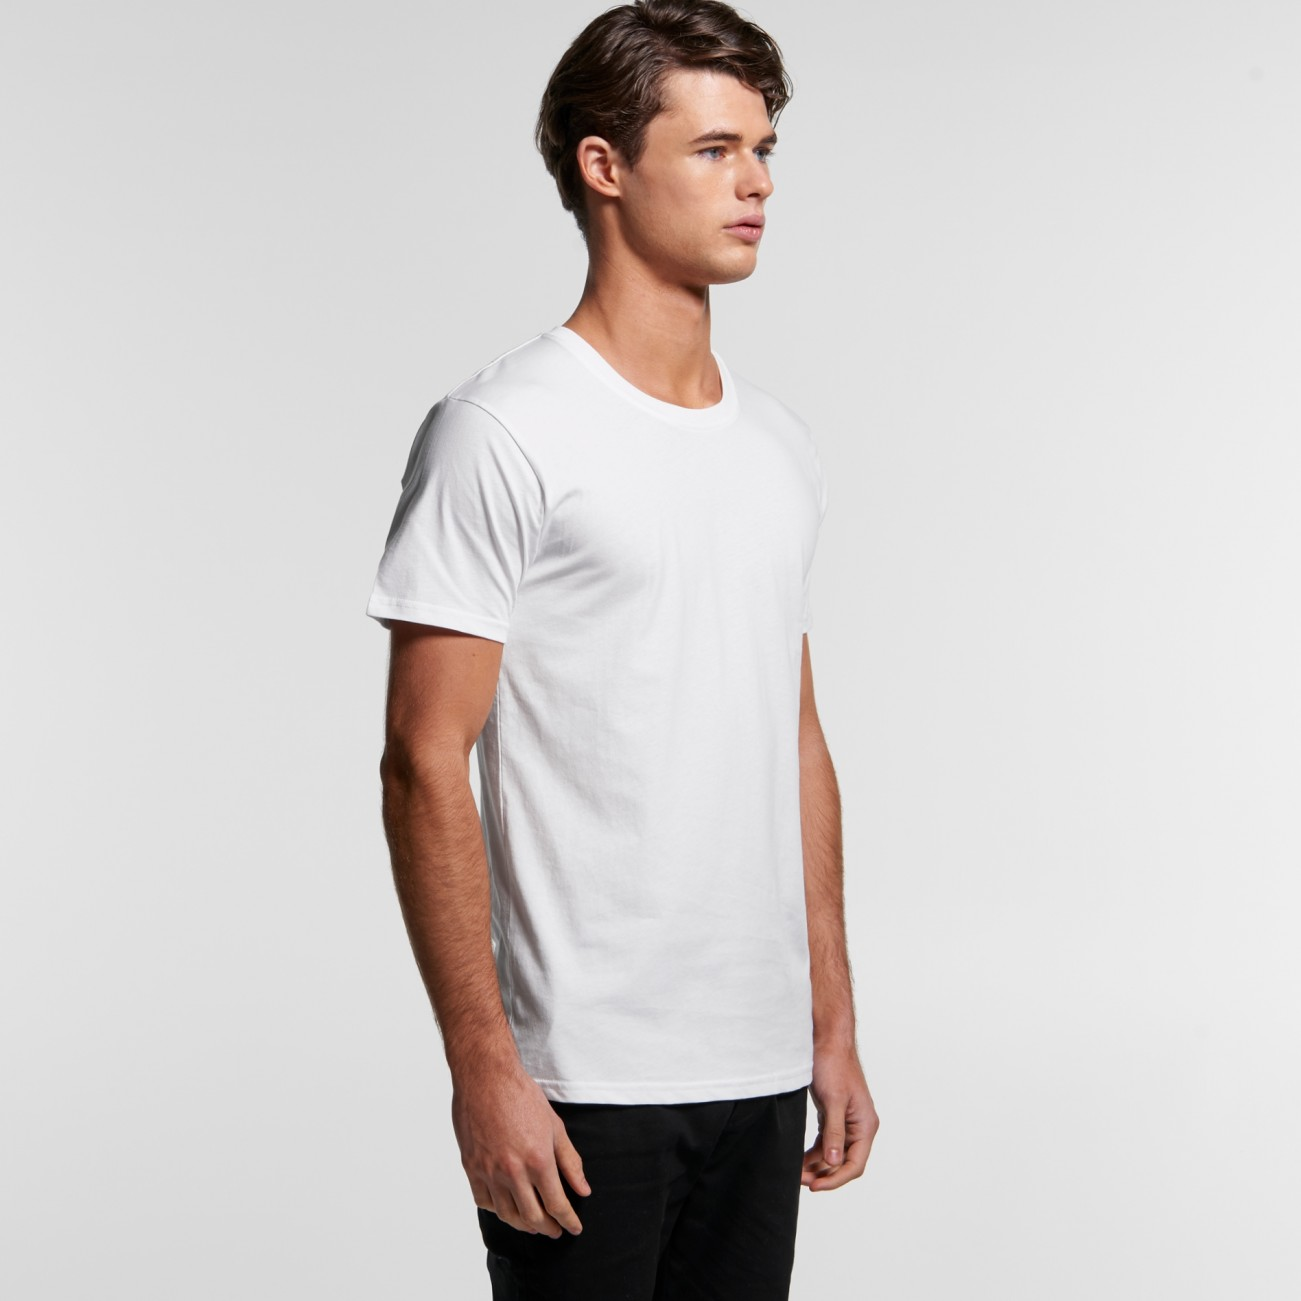 5001G MENS STAPLE ORGANIC TEE